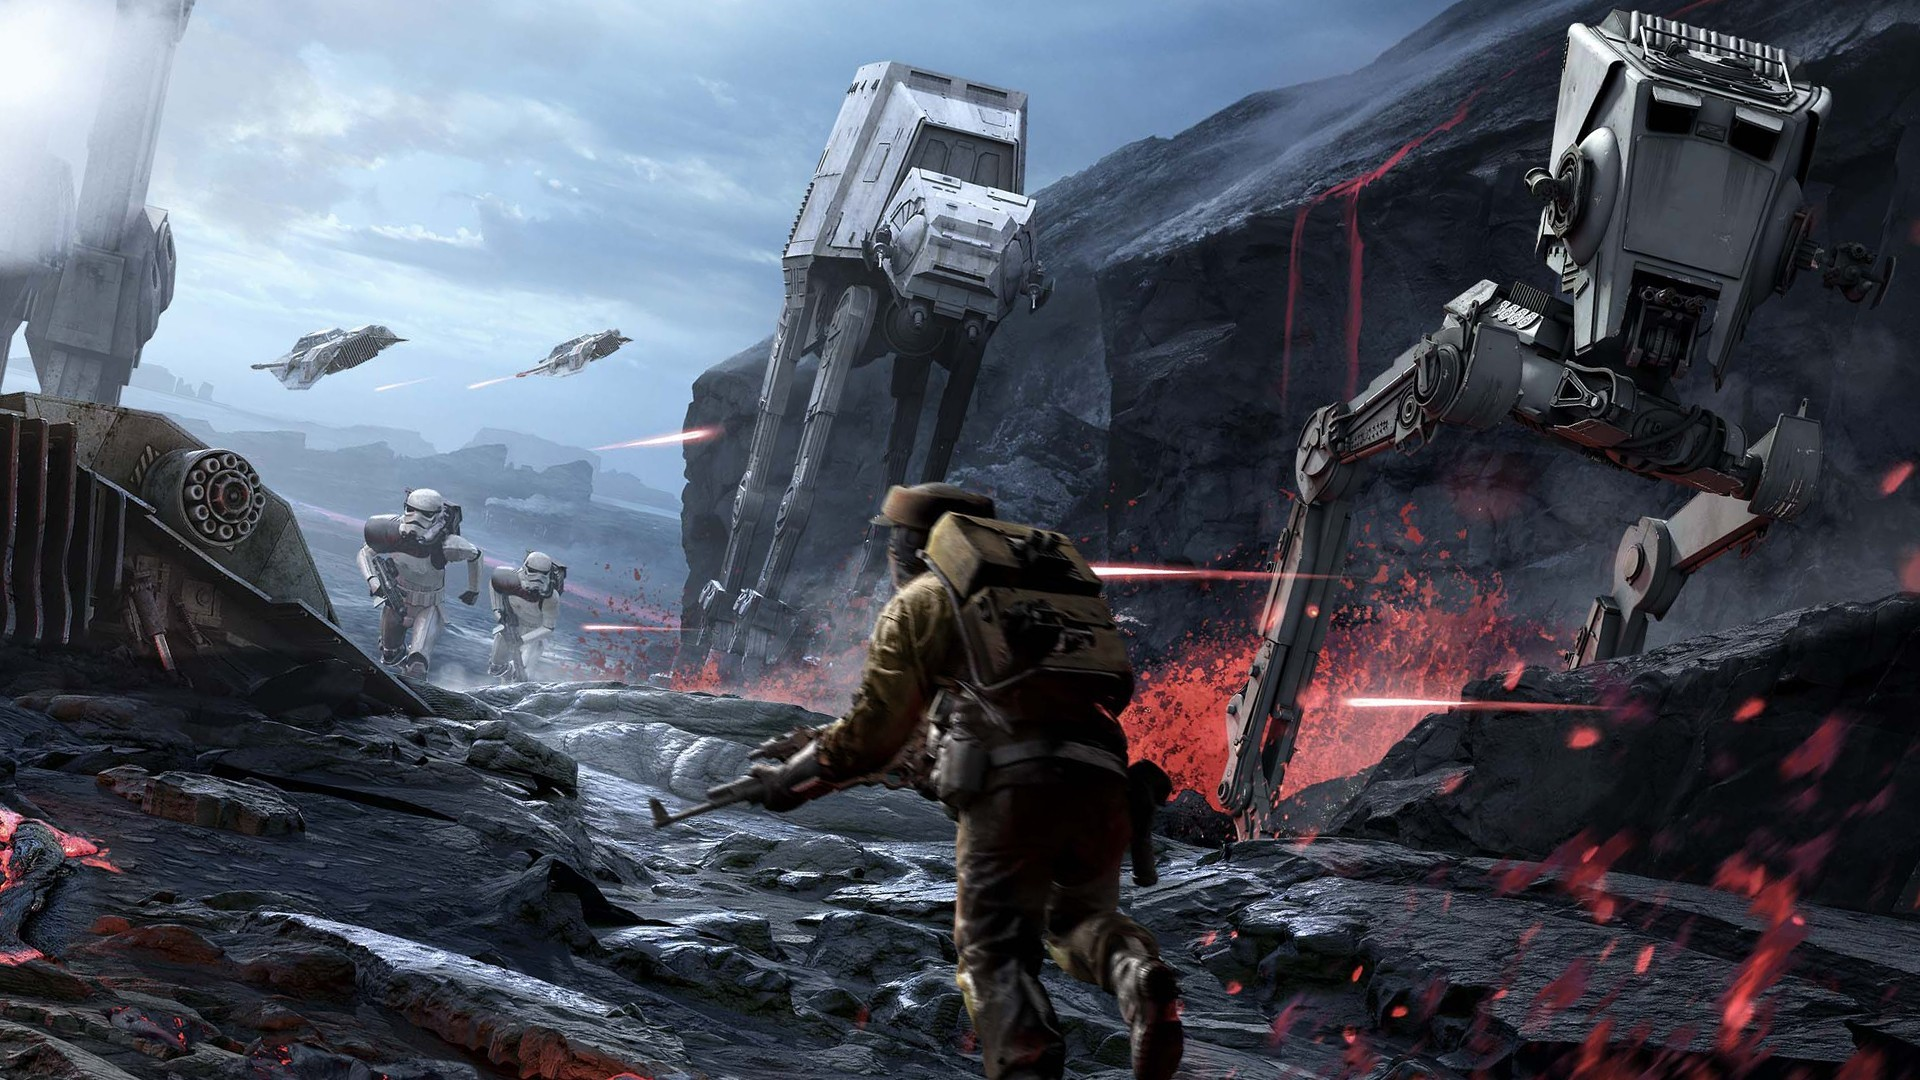 1920x1080 Star Wars Battlefront Wallpapers